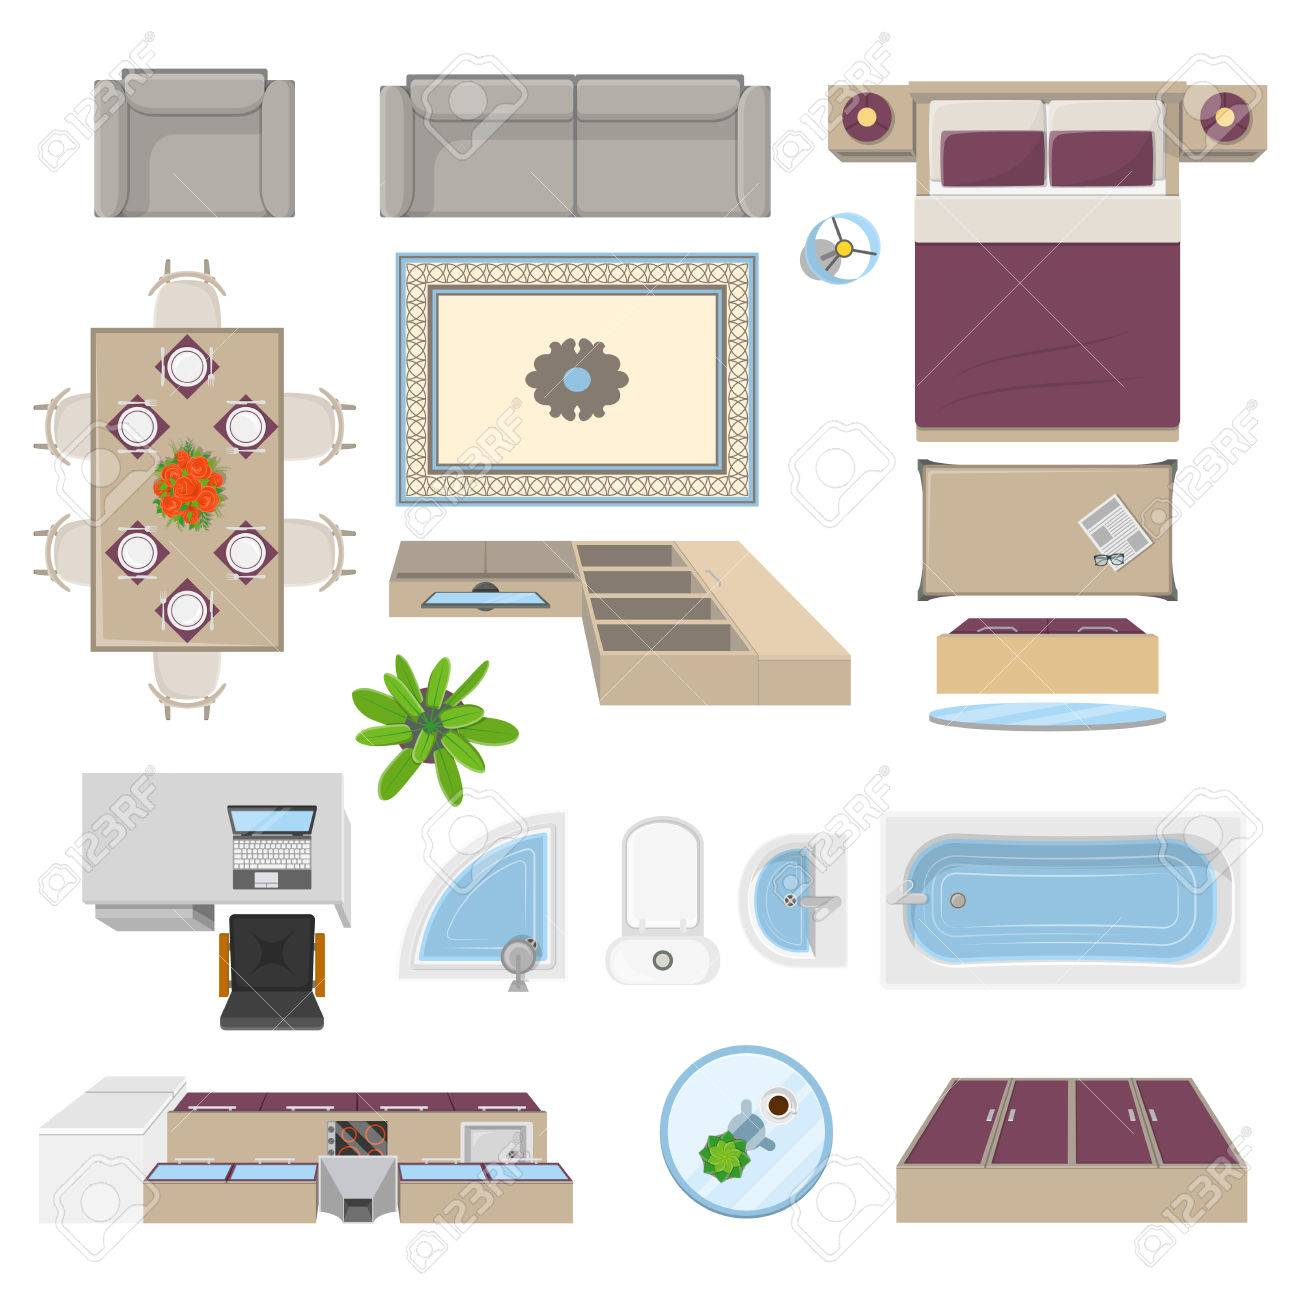 top bedroom furniture. Interior Elements Top View Position With Kitchen Lounge Bathroom Bedroom Furniture Isolated Vector Illustration Stock V